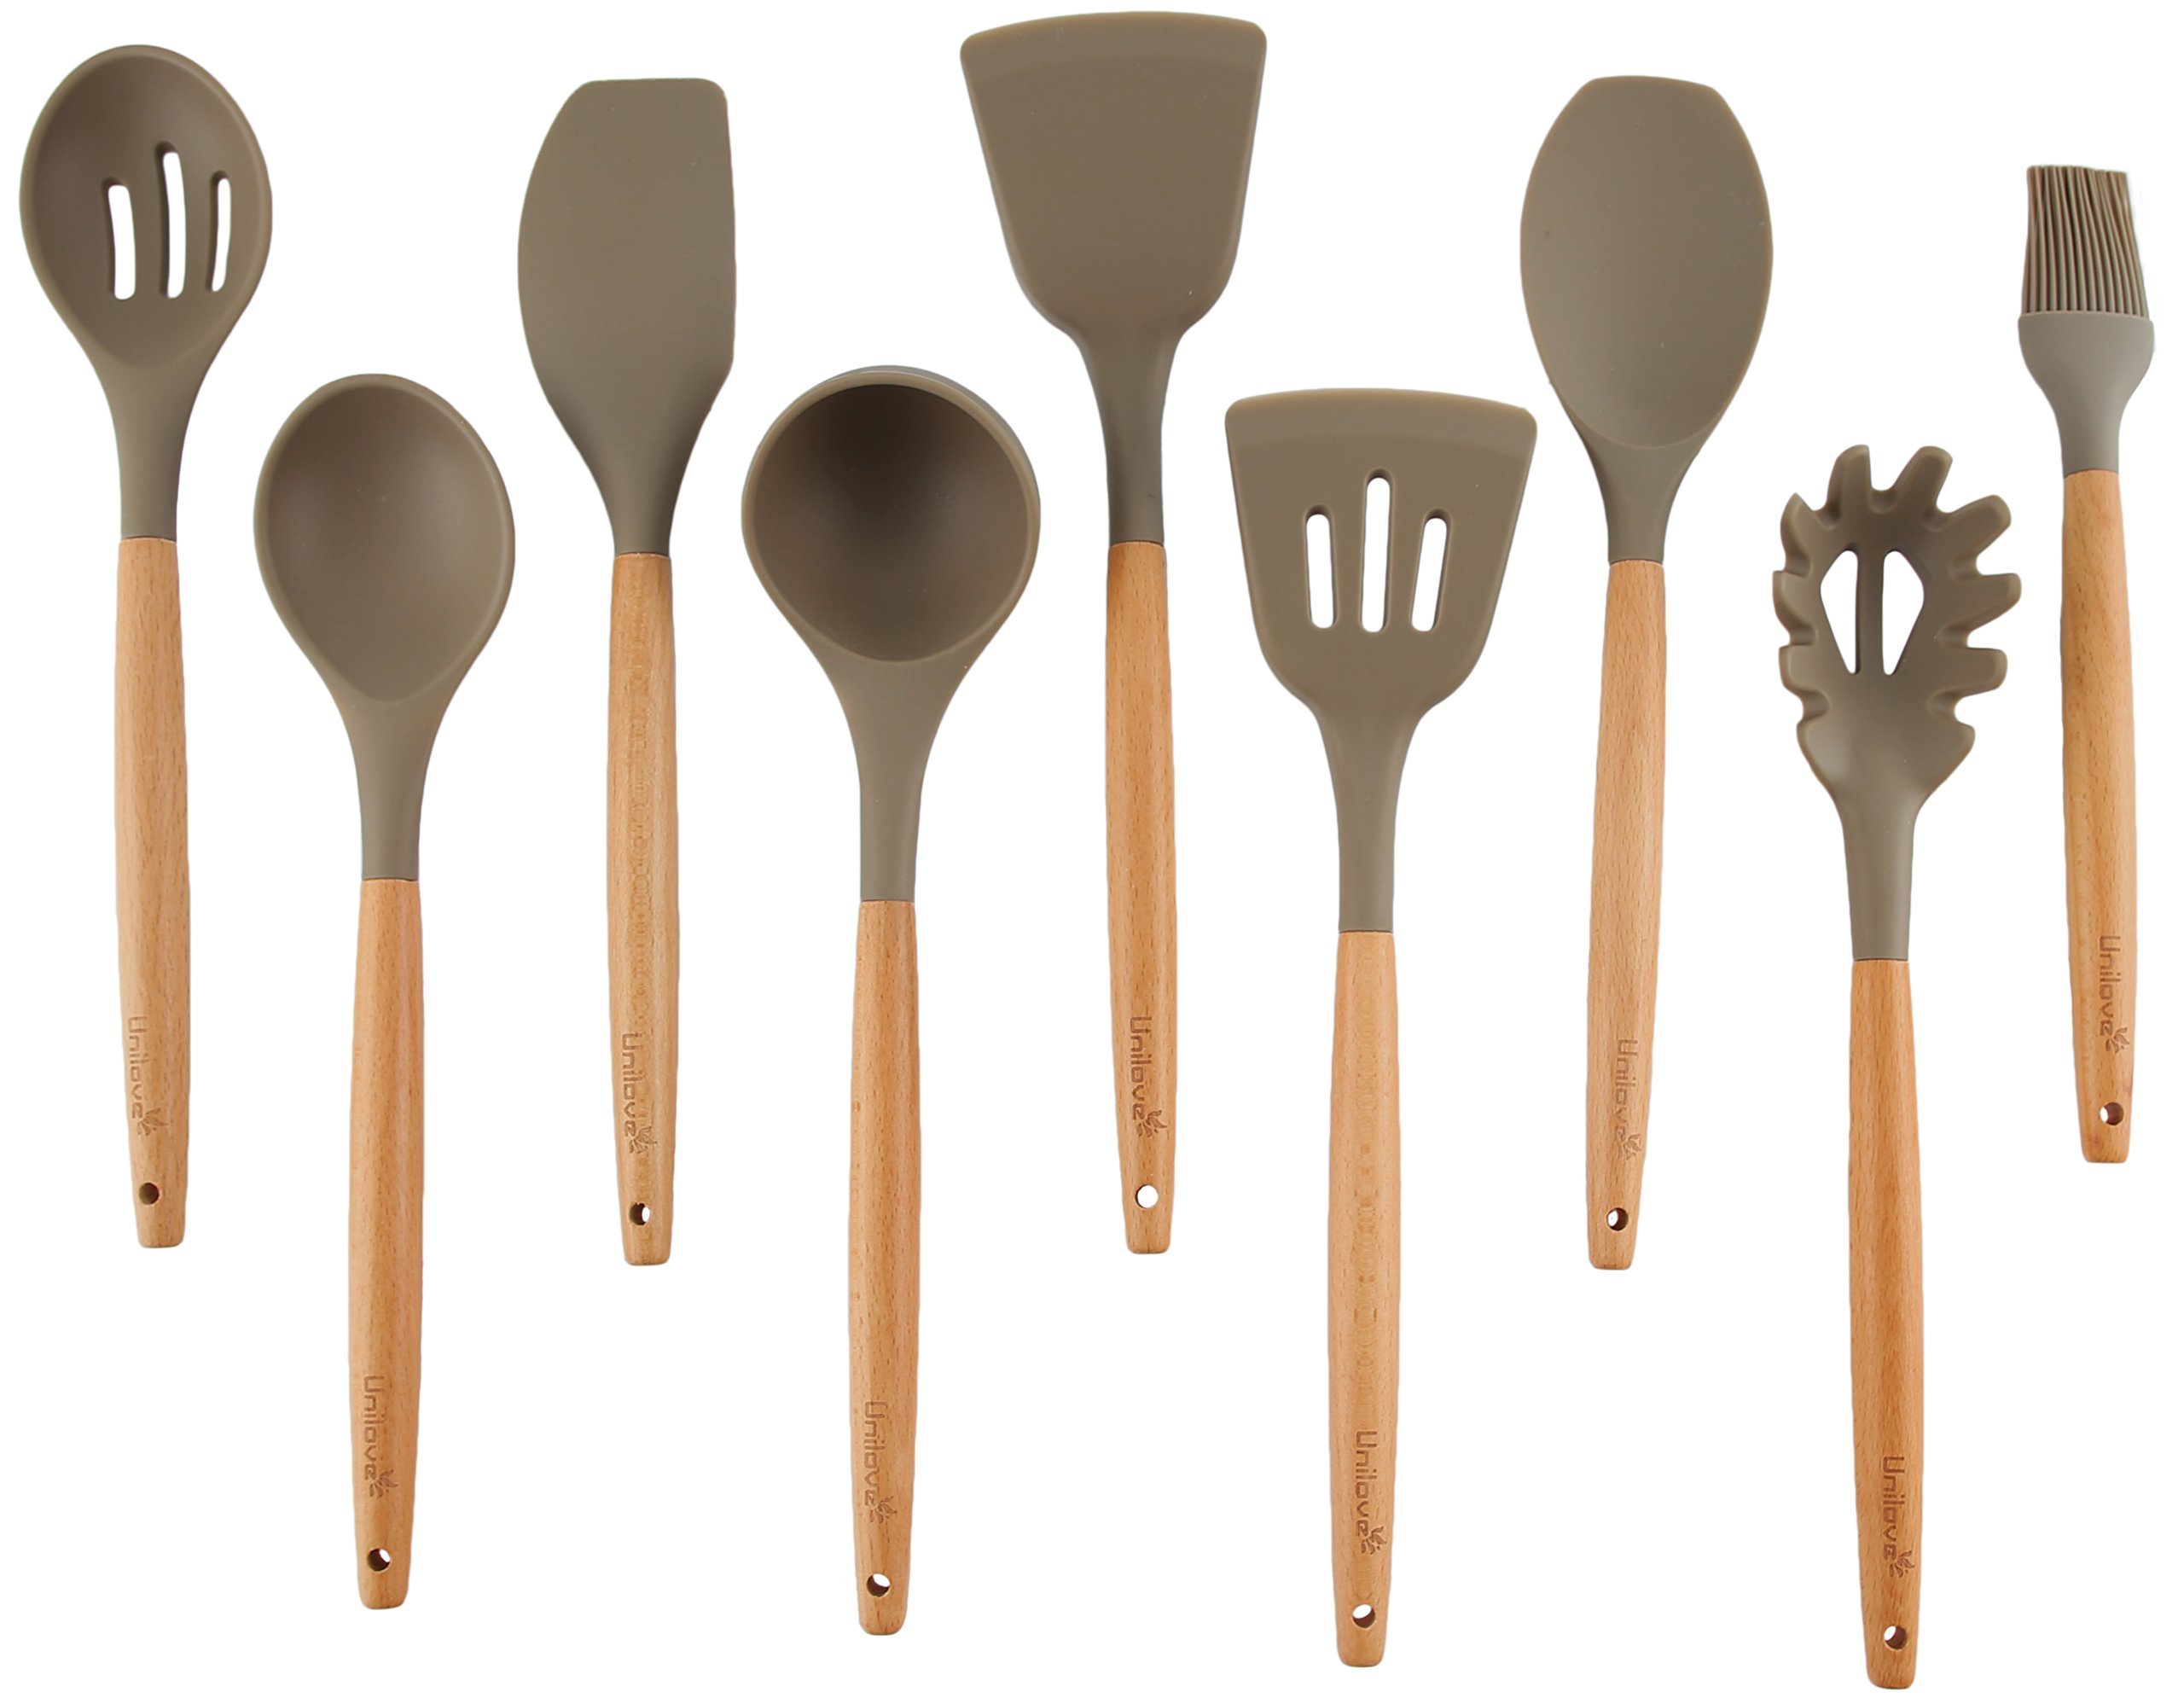 Unilove Silicone Cooking Utensil Set 9 Piece Home Kitchen Utensils Wood Cooking Utensils set for Nonstick Cookware